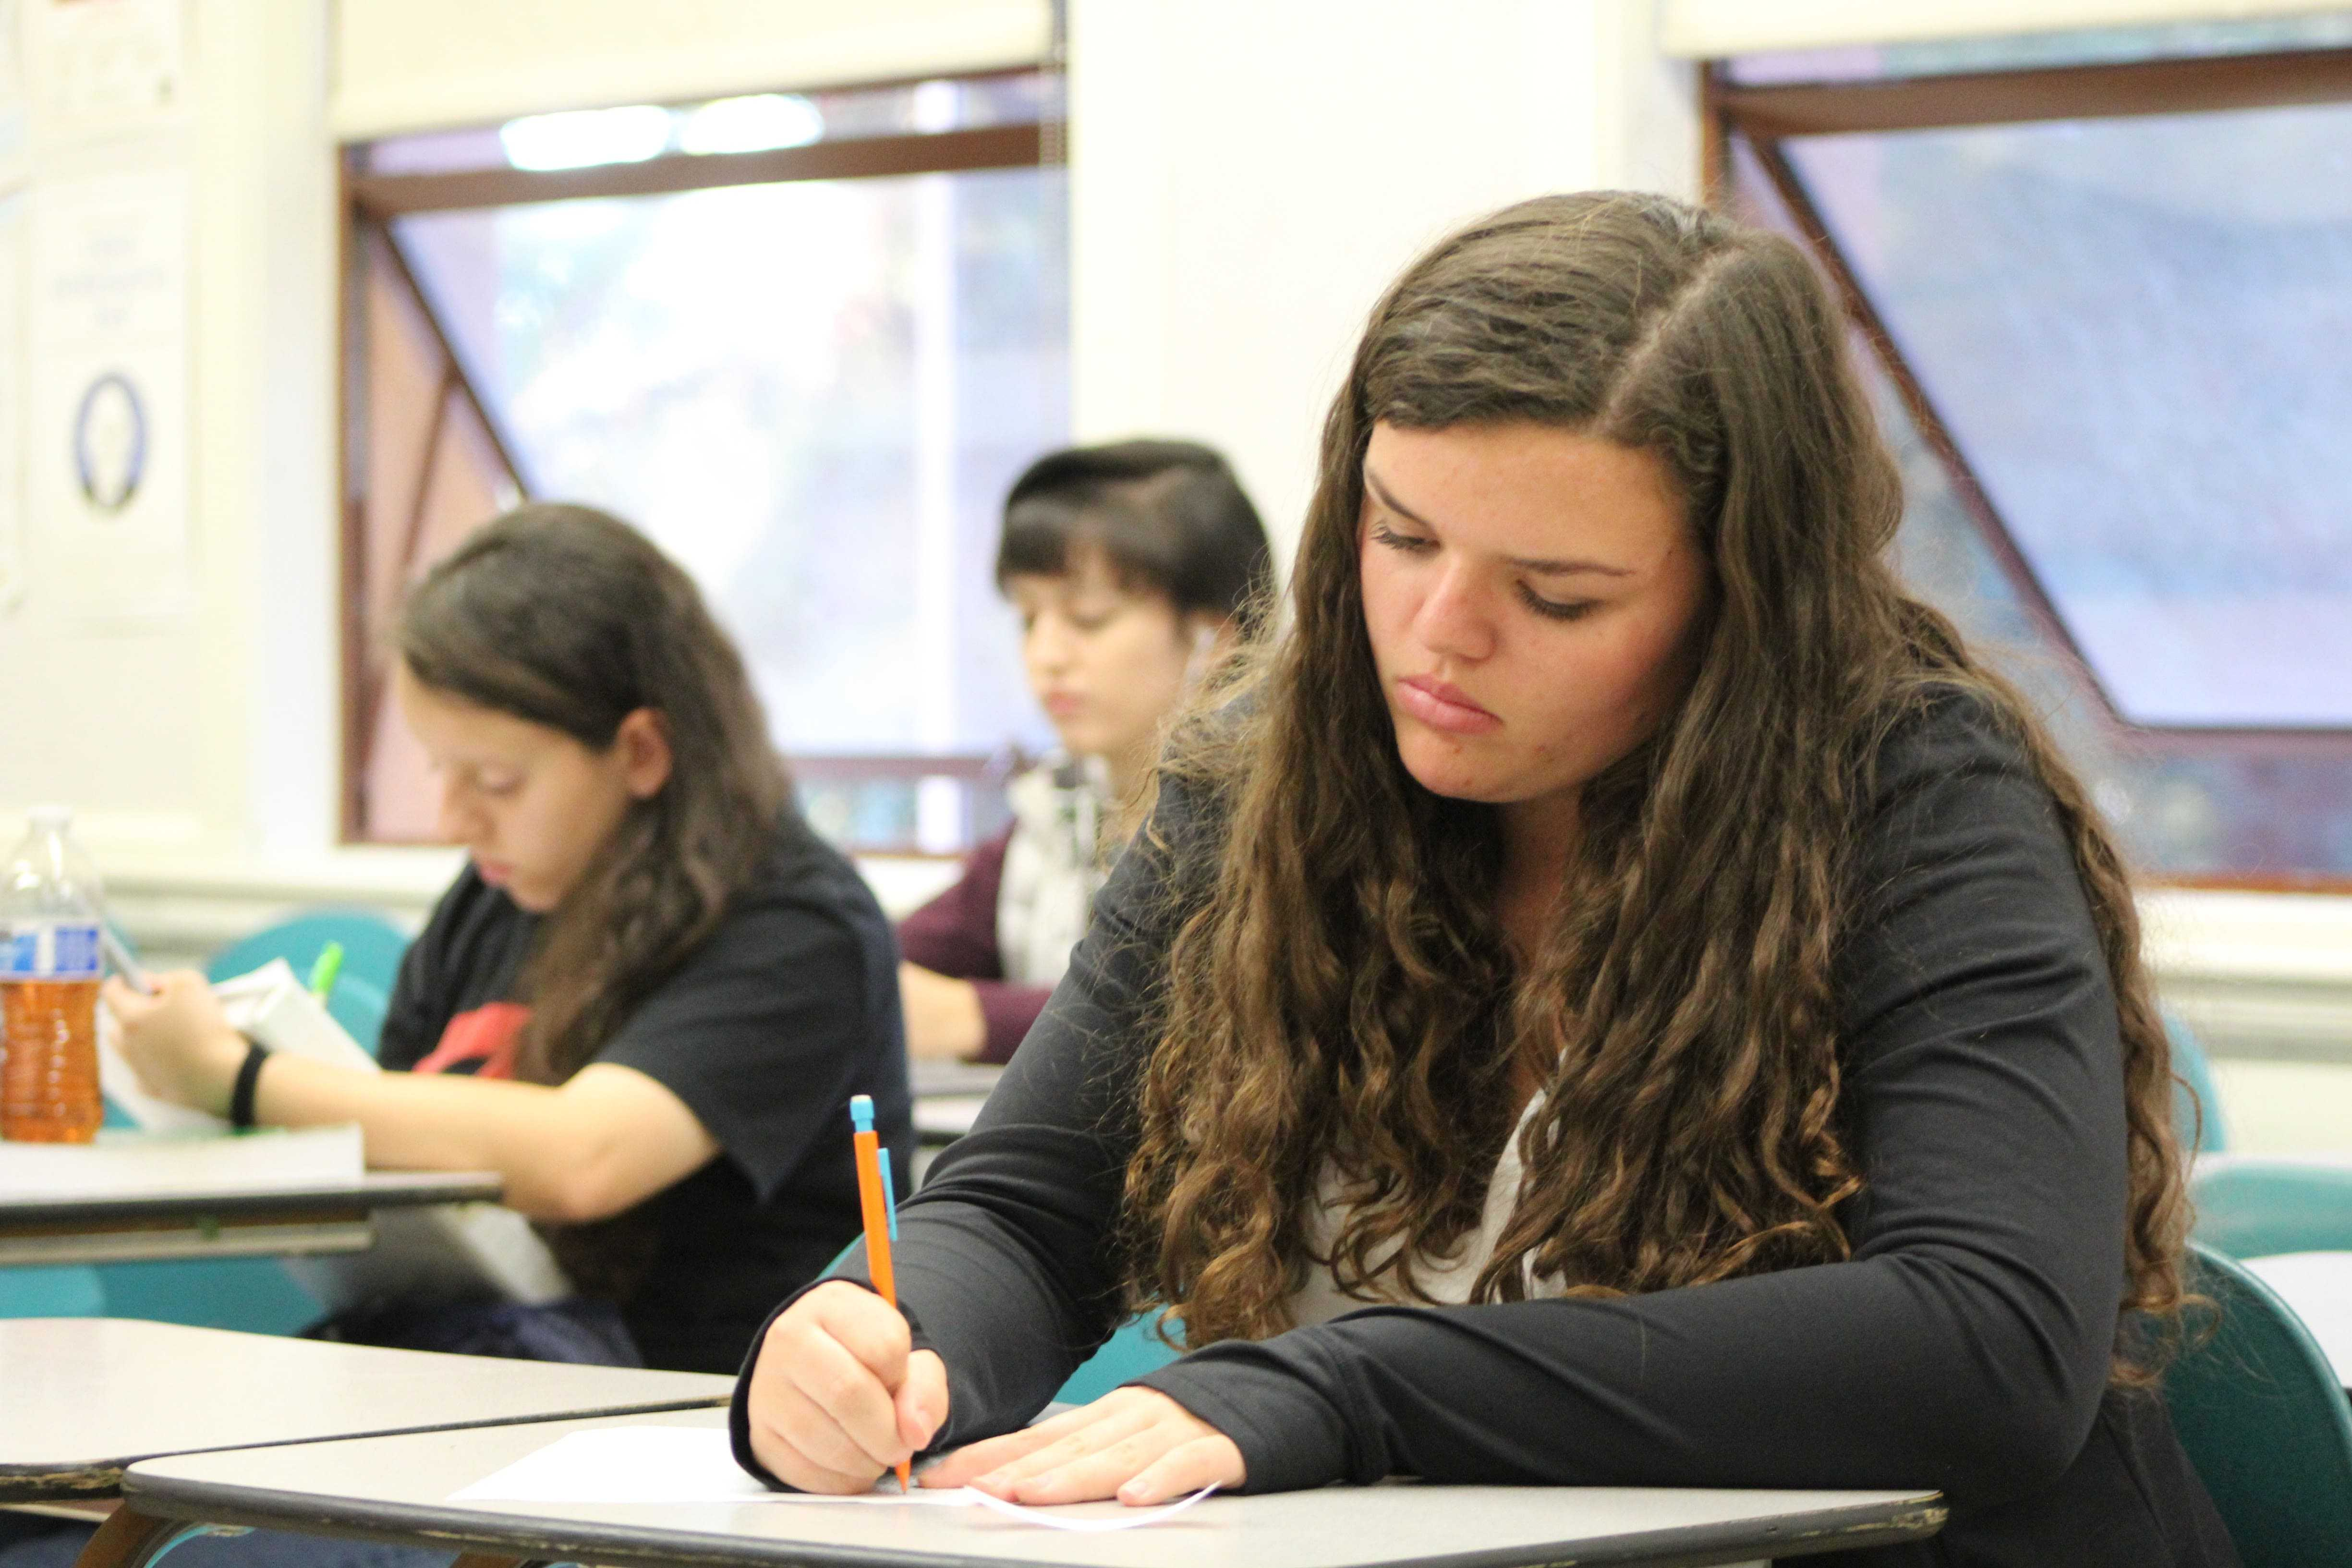 Junior Nova Mitchell spends afternoons in AVID, one of Sequoia's efforts to close the achievement gap. In AVID, students learn skills to help them succeed in college.